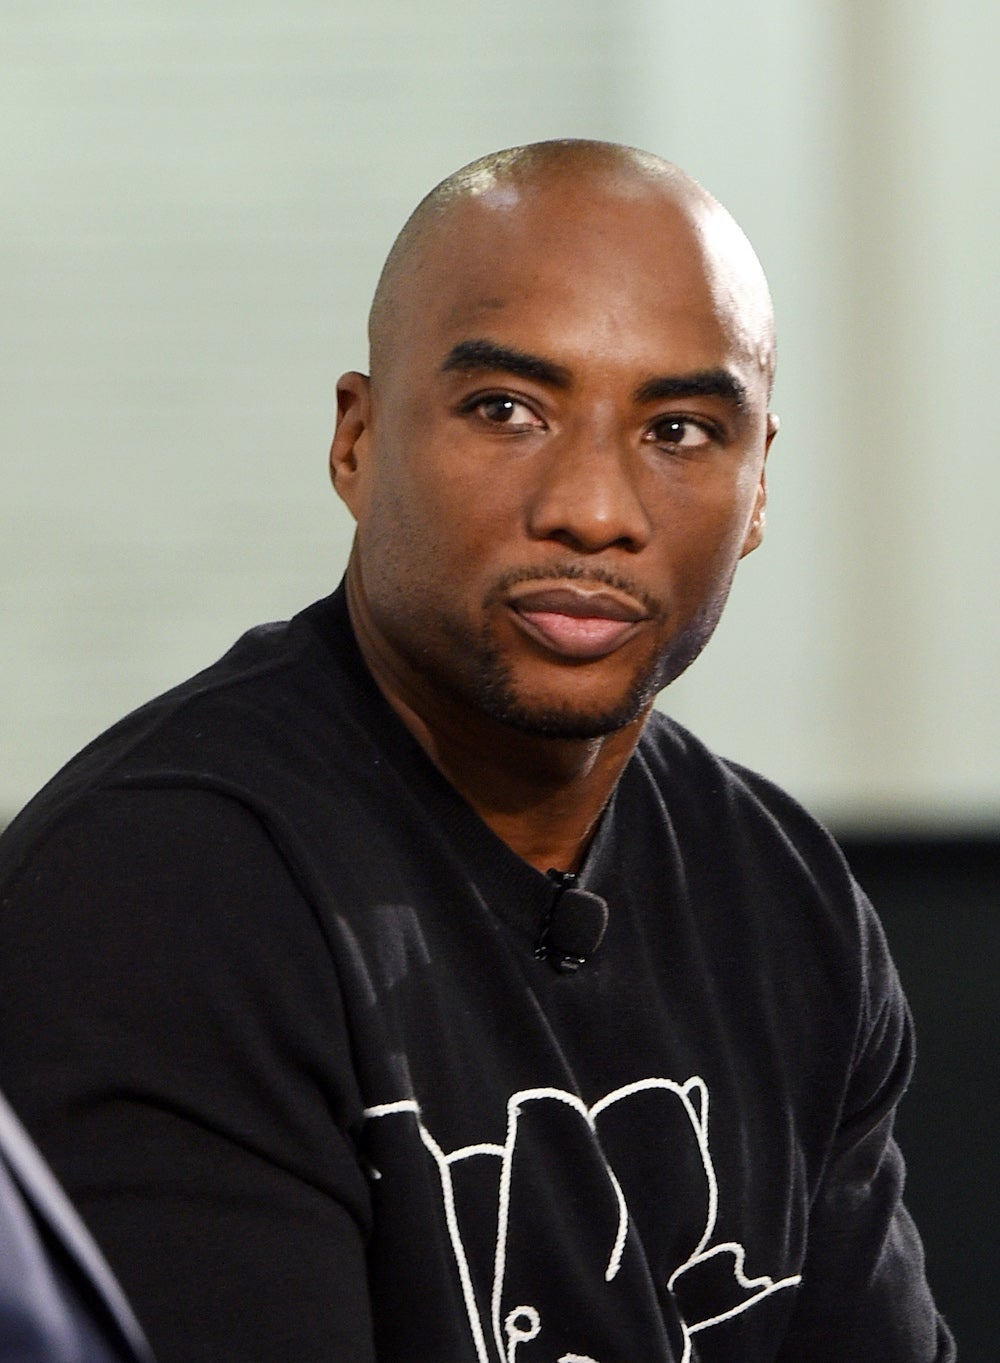 How old is charlamagne tha god